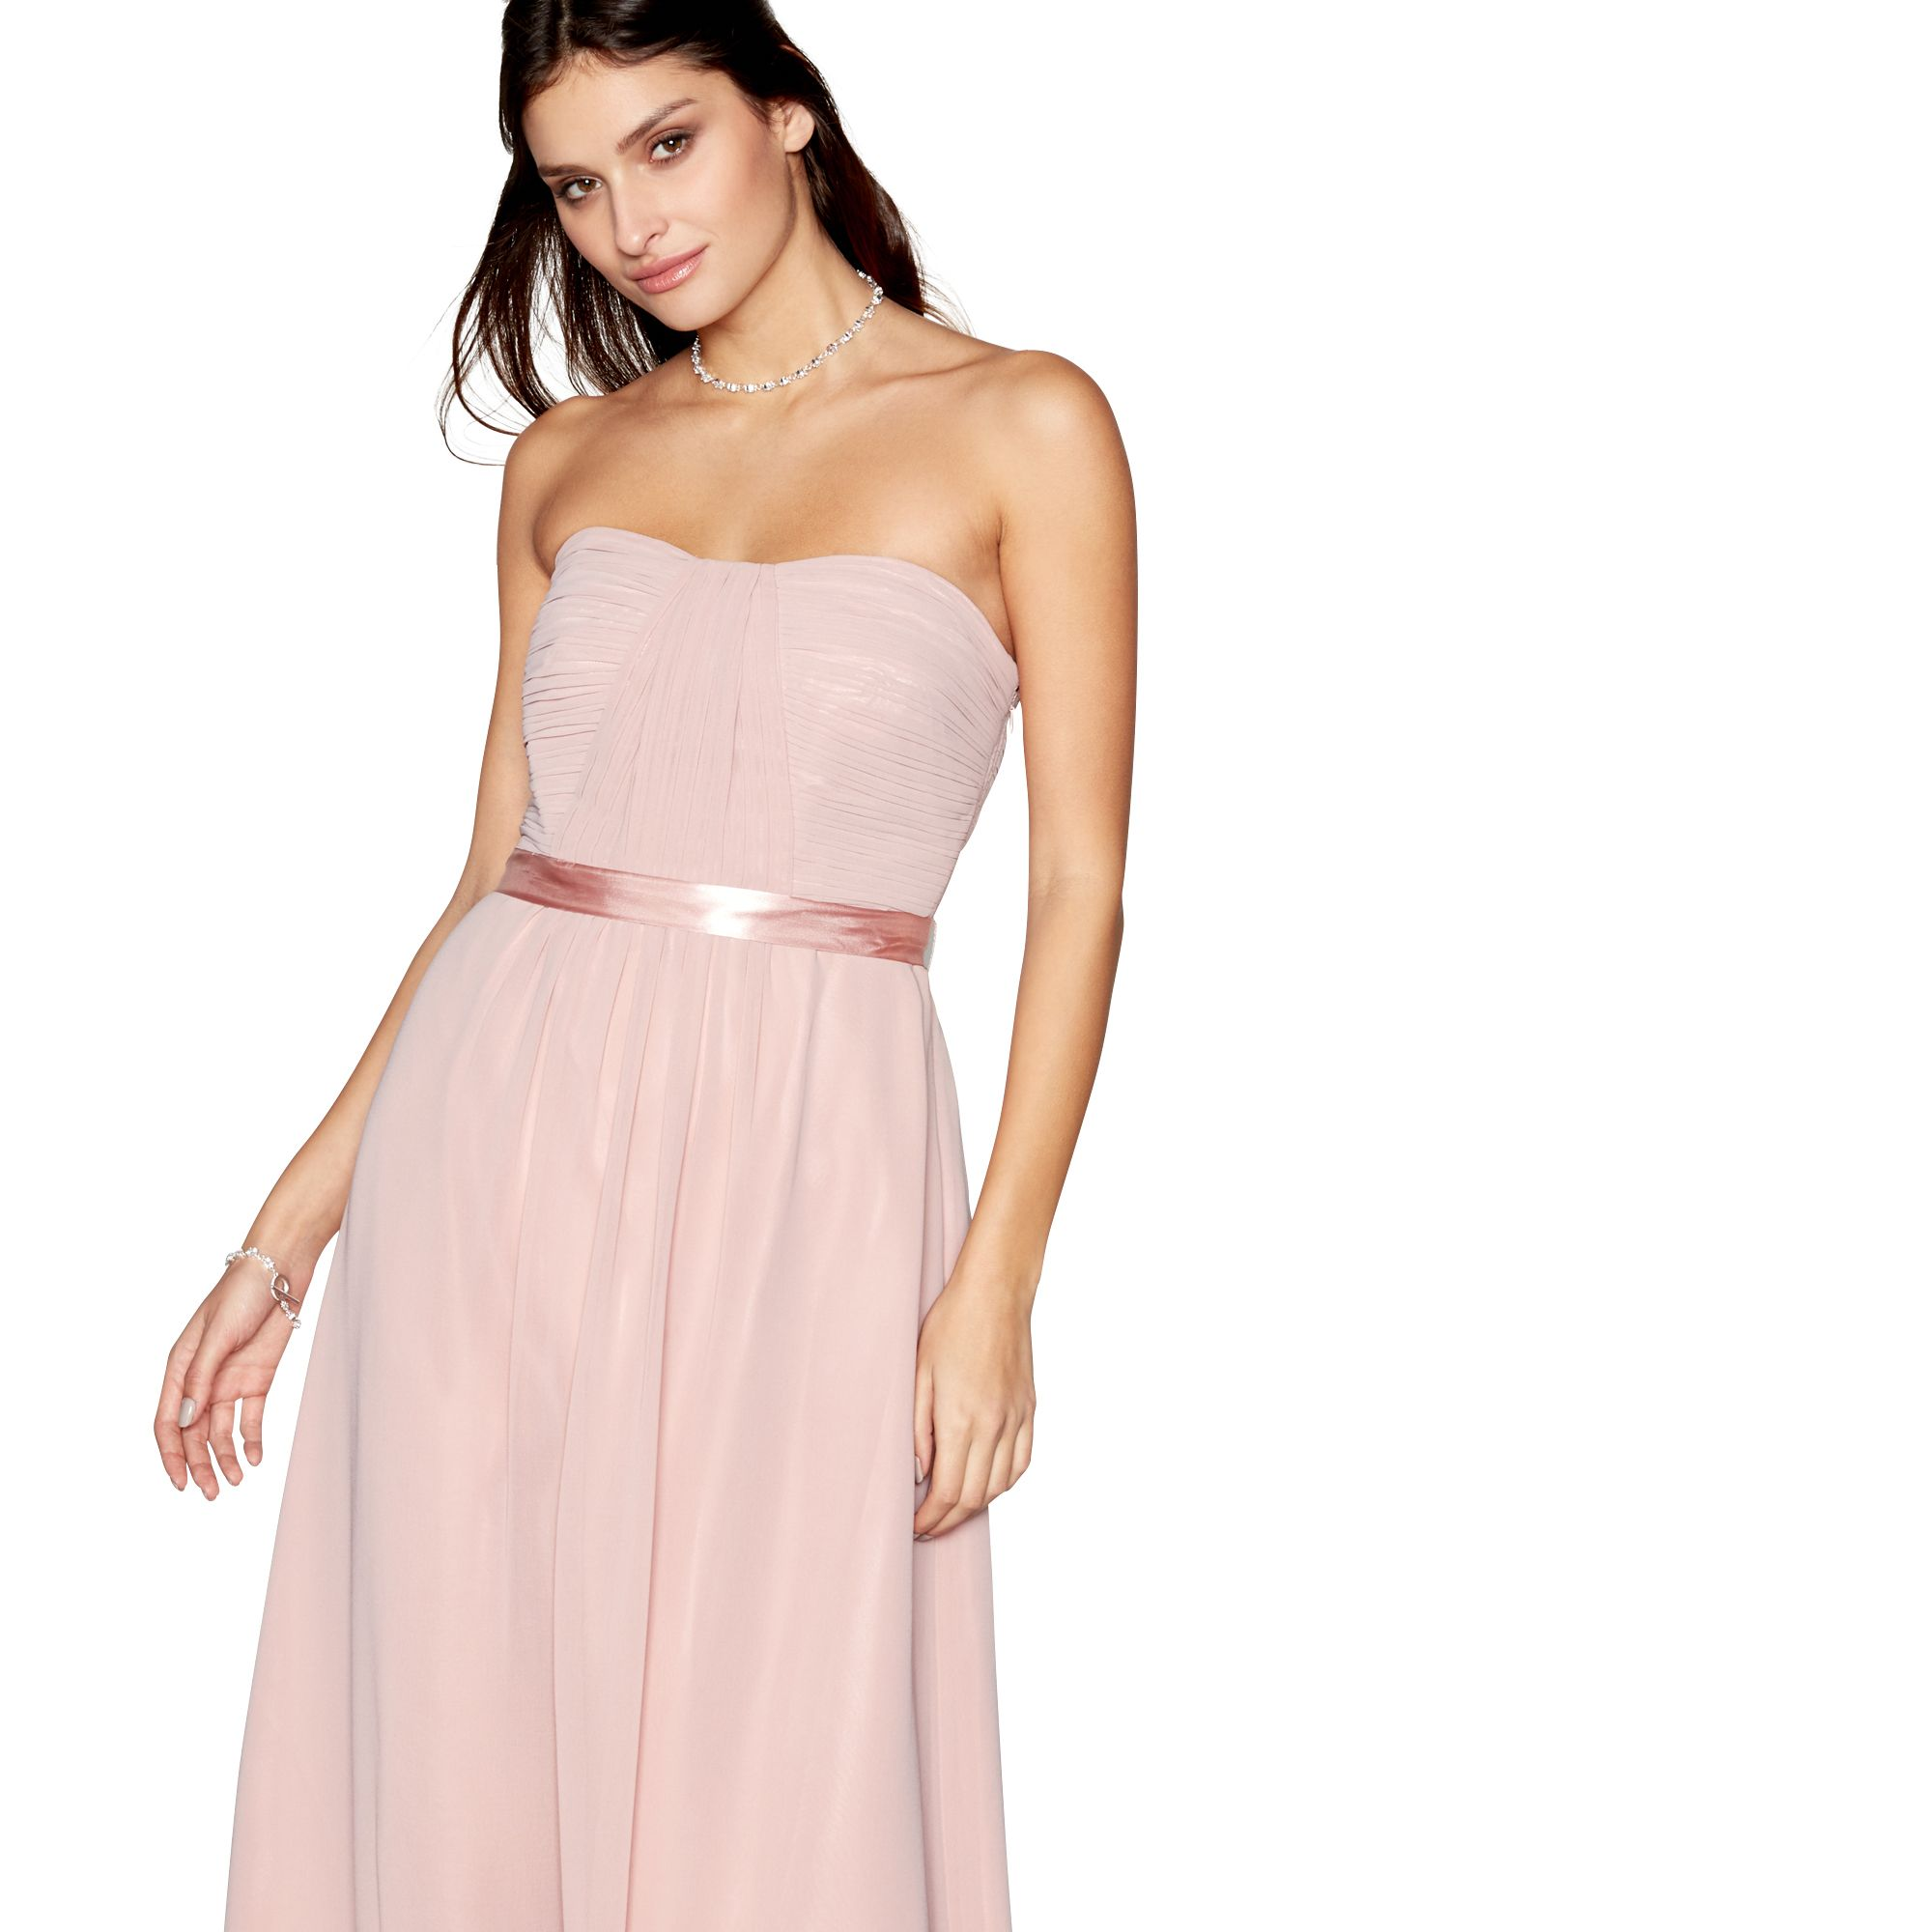 Debut womens mid rose sophia bridesmaid dress from debenhams ebay free standard delivery on orders over 45 ombrellifo Gallery